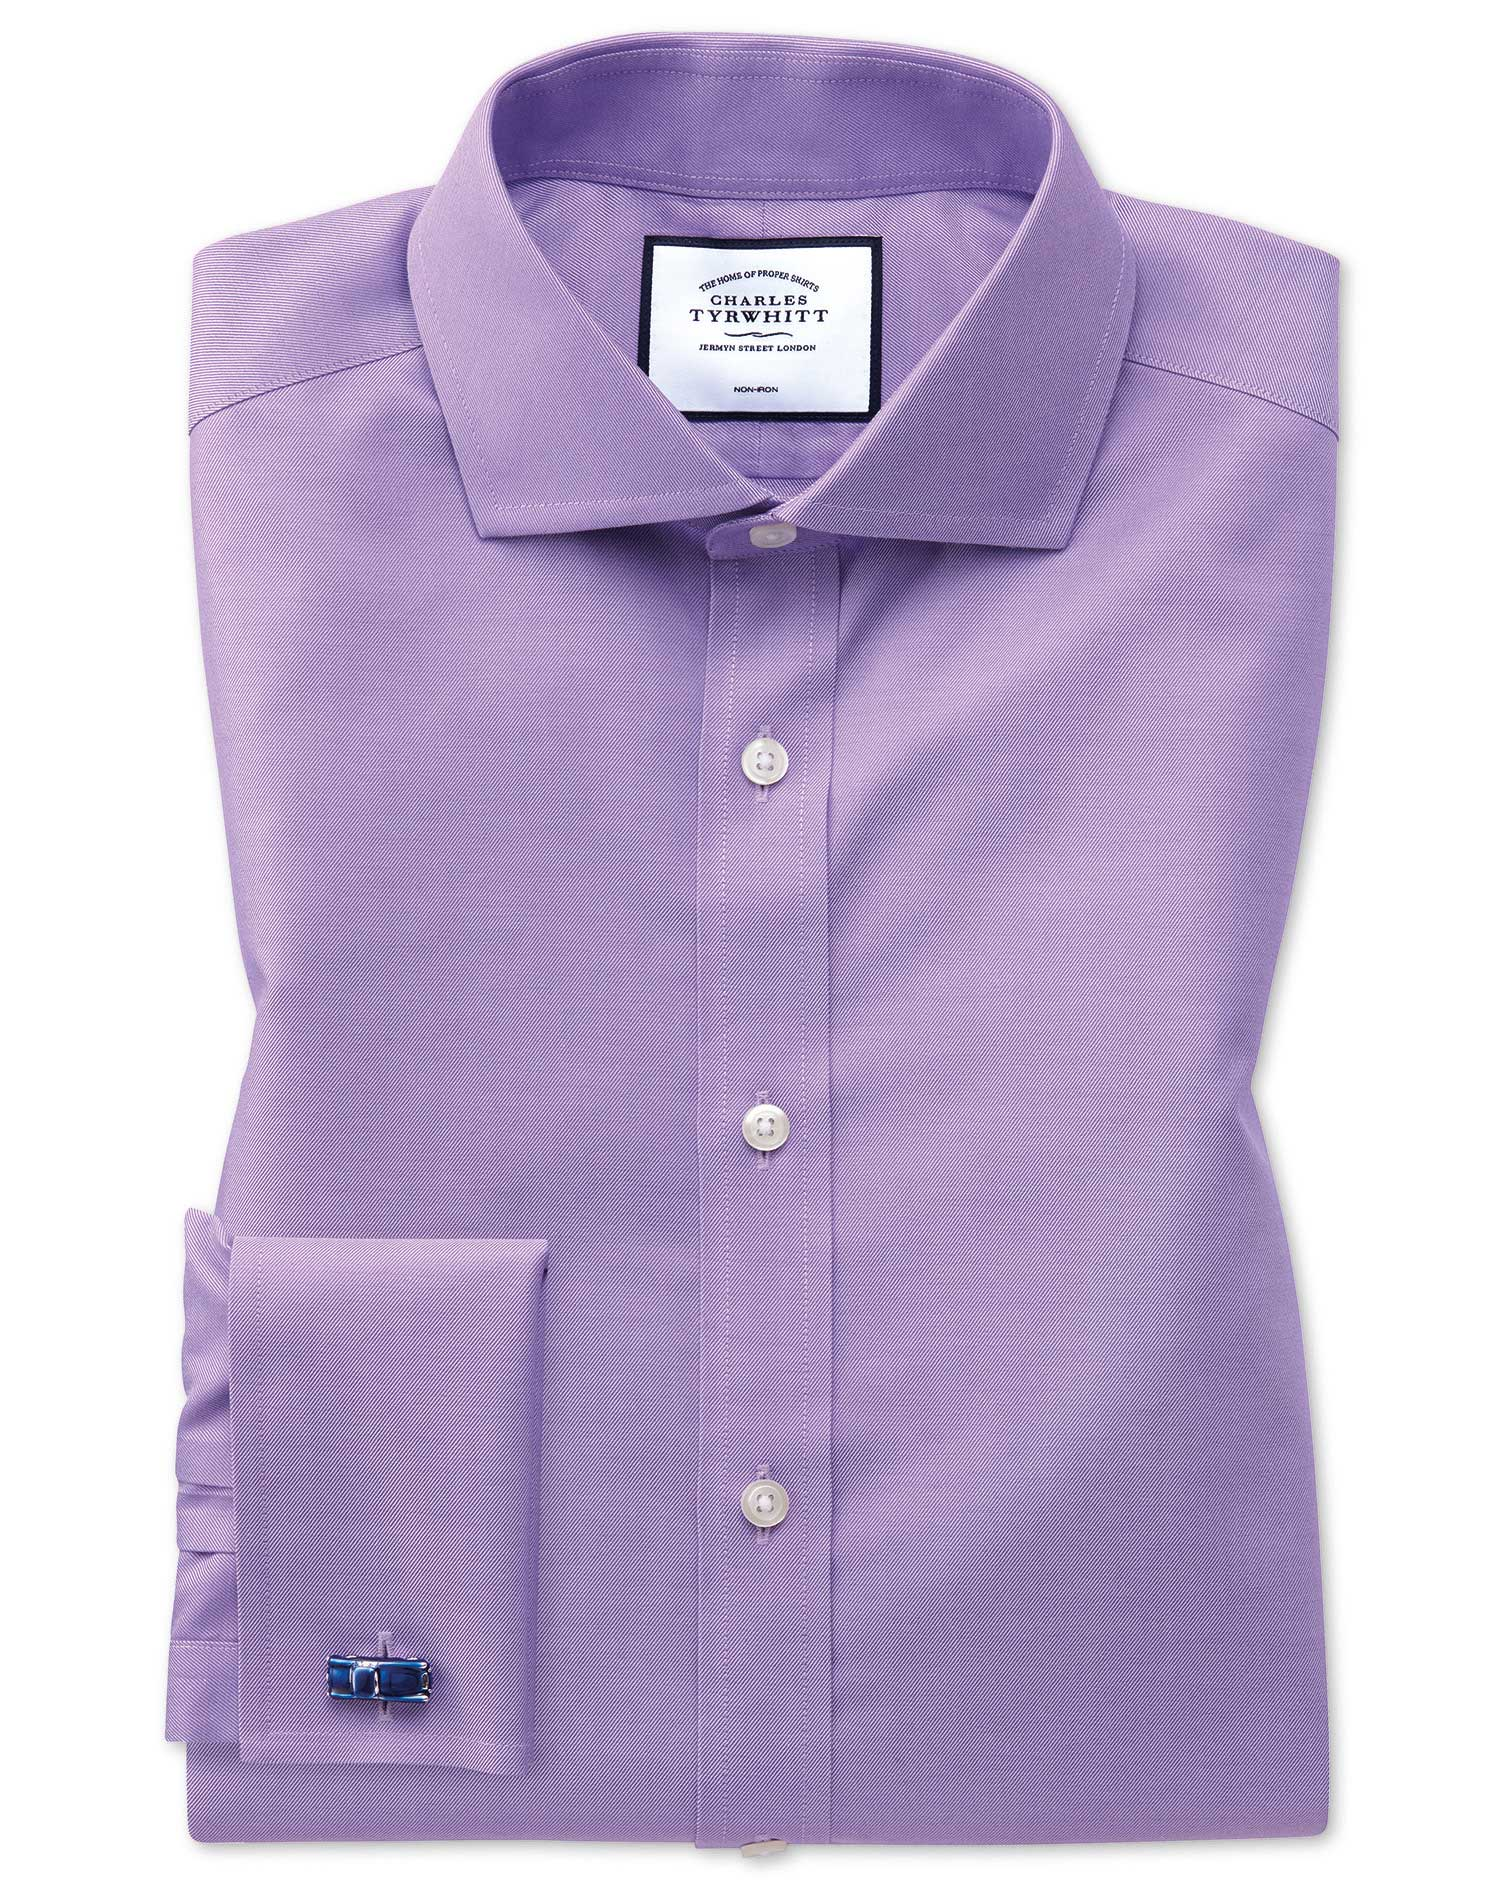 Slim Fit Non-Iron Cutaway Collar Lilac Twill Cotton Formal Shirt Double Cuff Size 15/33 by Charles T